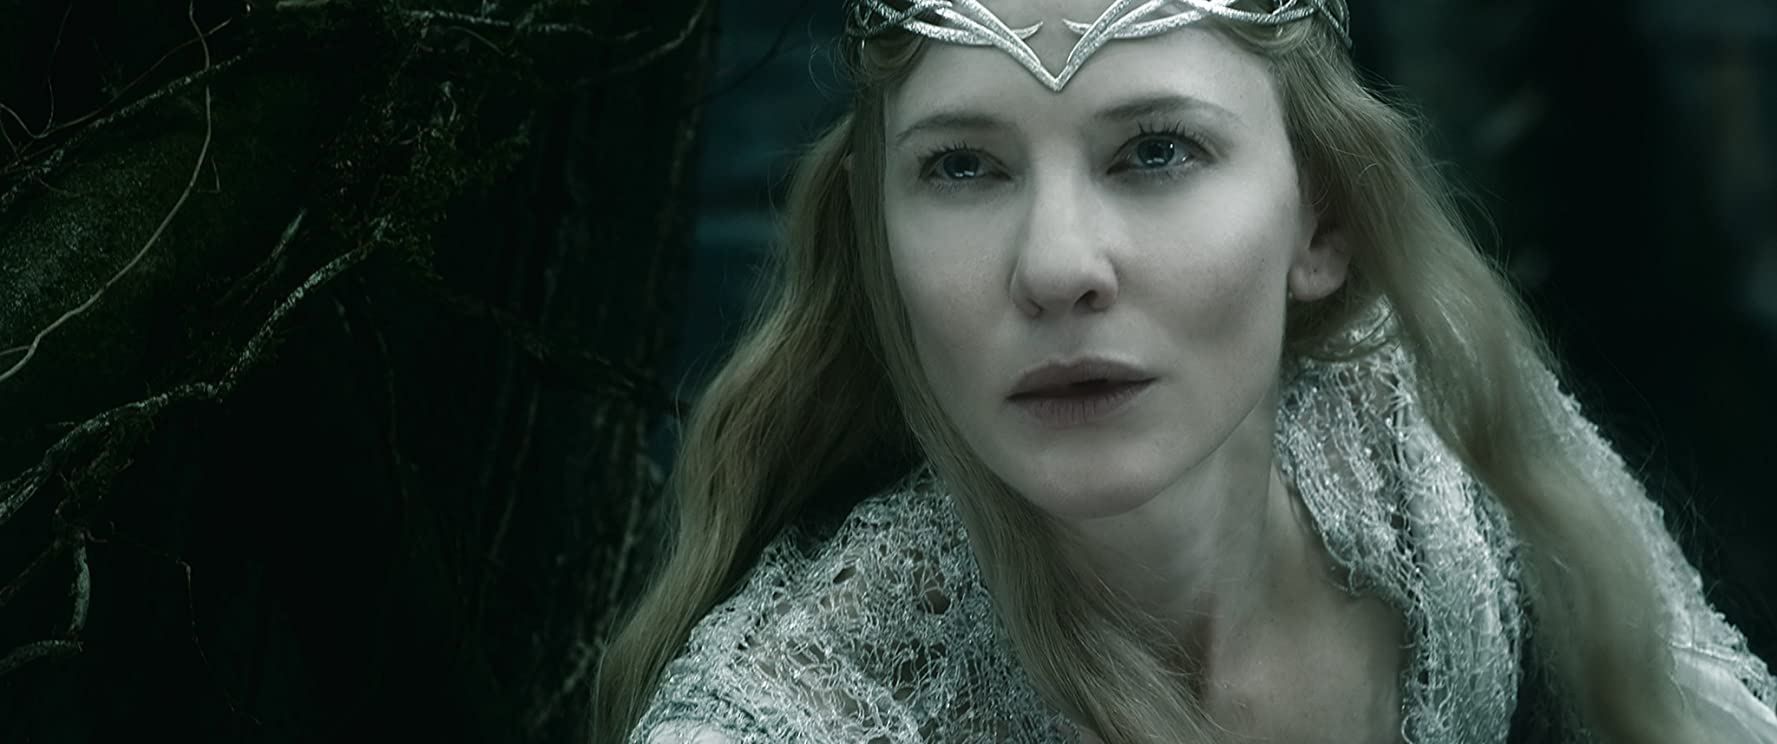 Cate Blanchett in The Hobbit: The Battle of the Five Armies (2014)